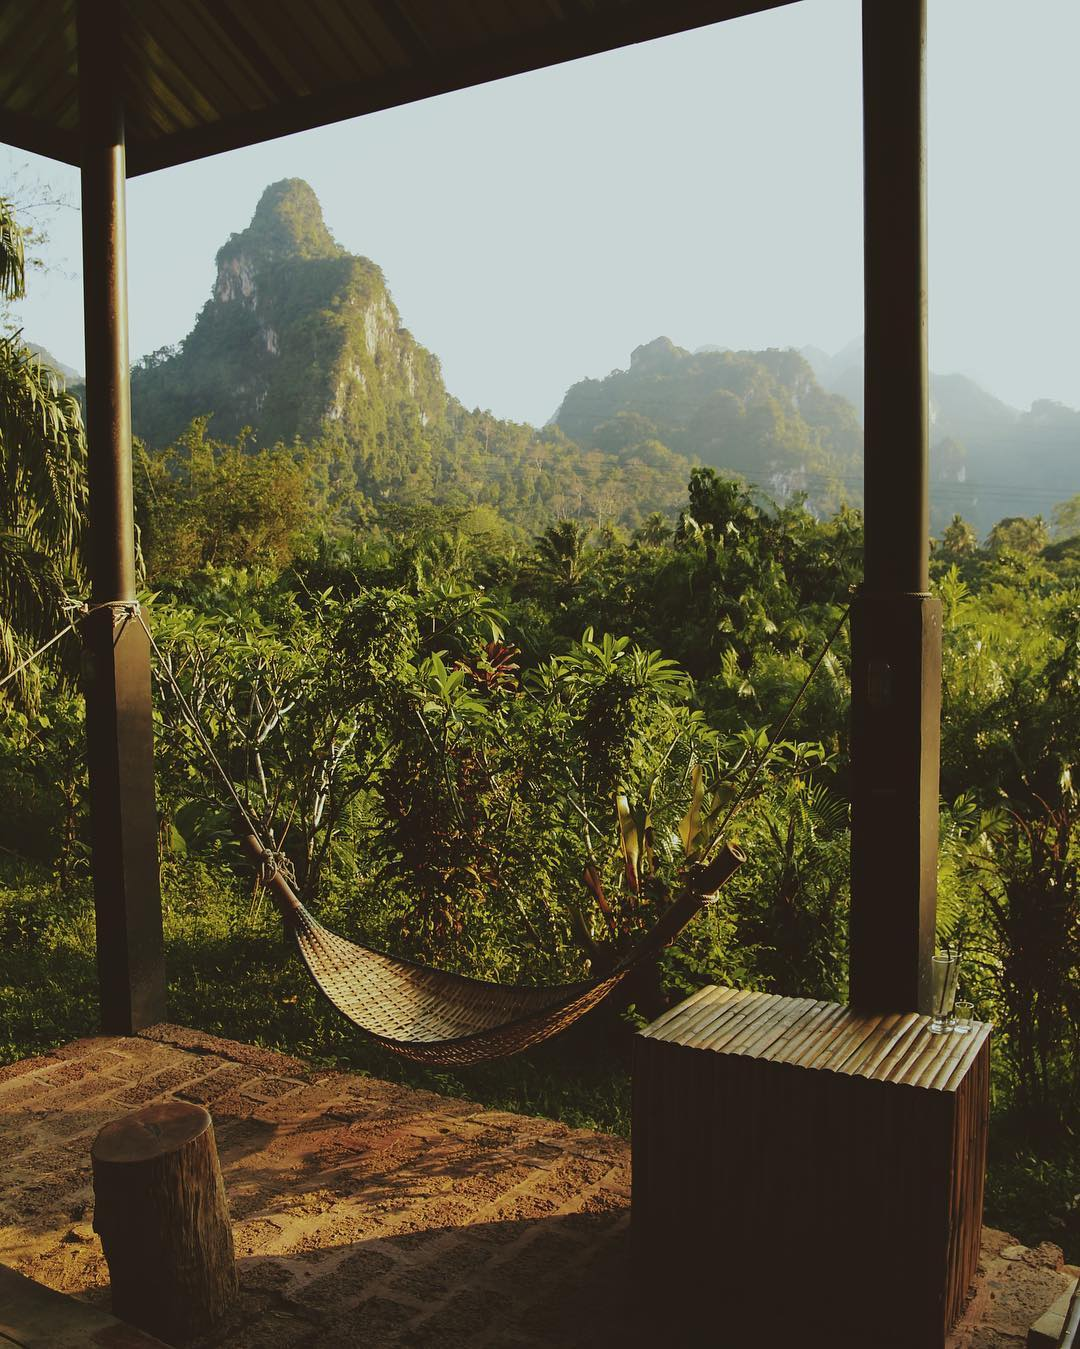 Cottage with hammock overlooking the limestone mountains of Khao Sok National Park